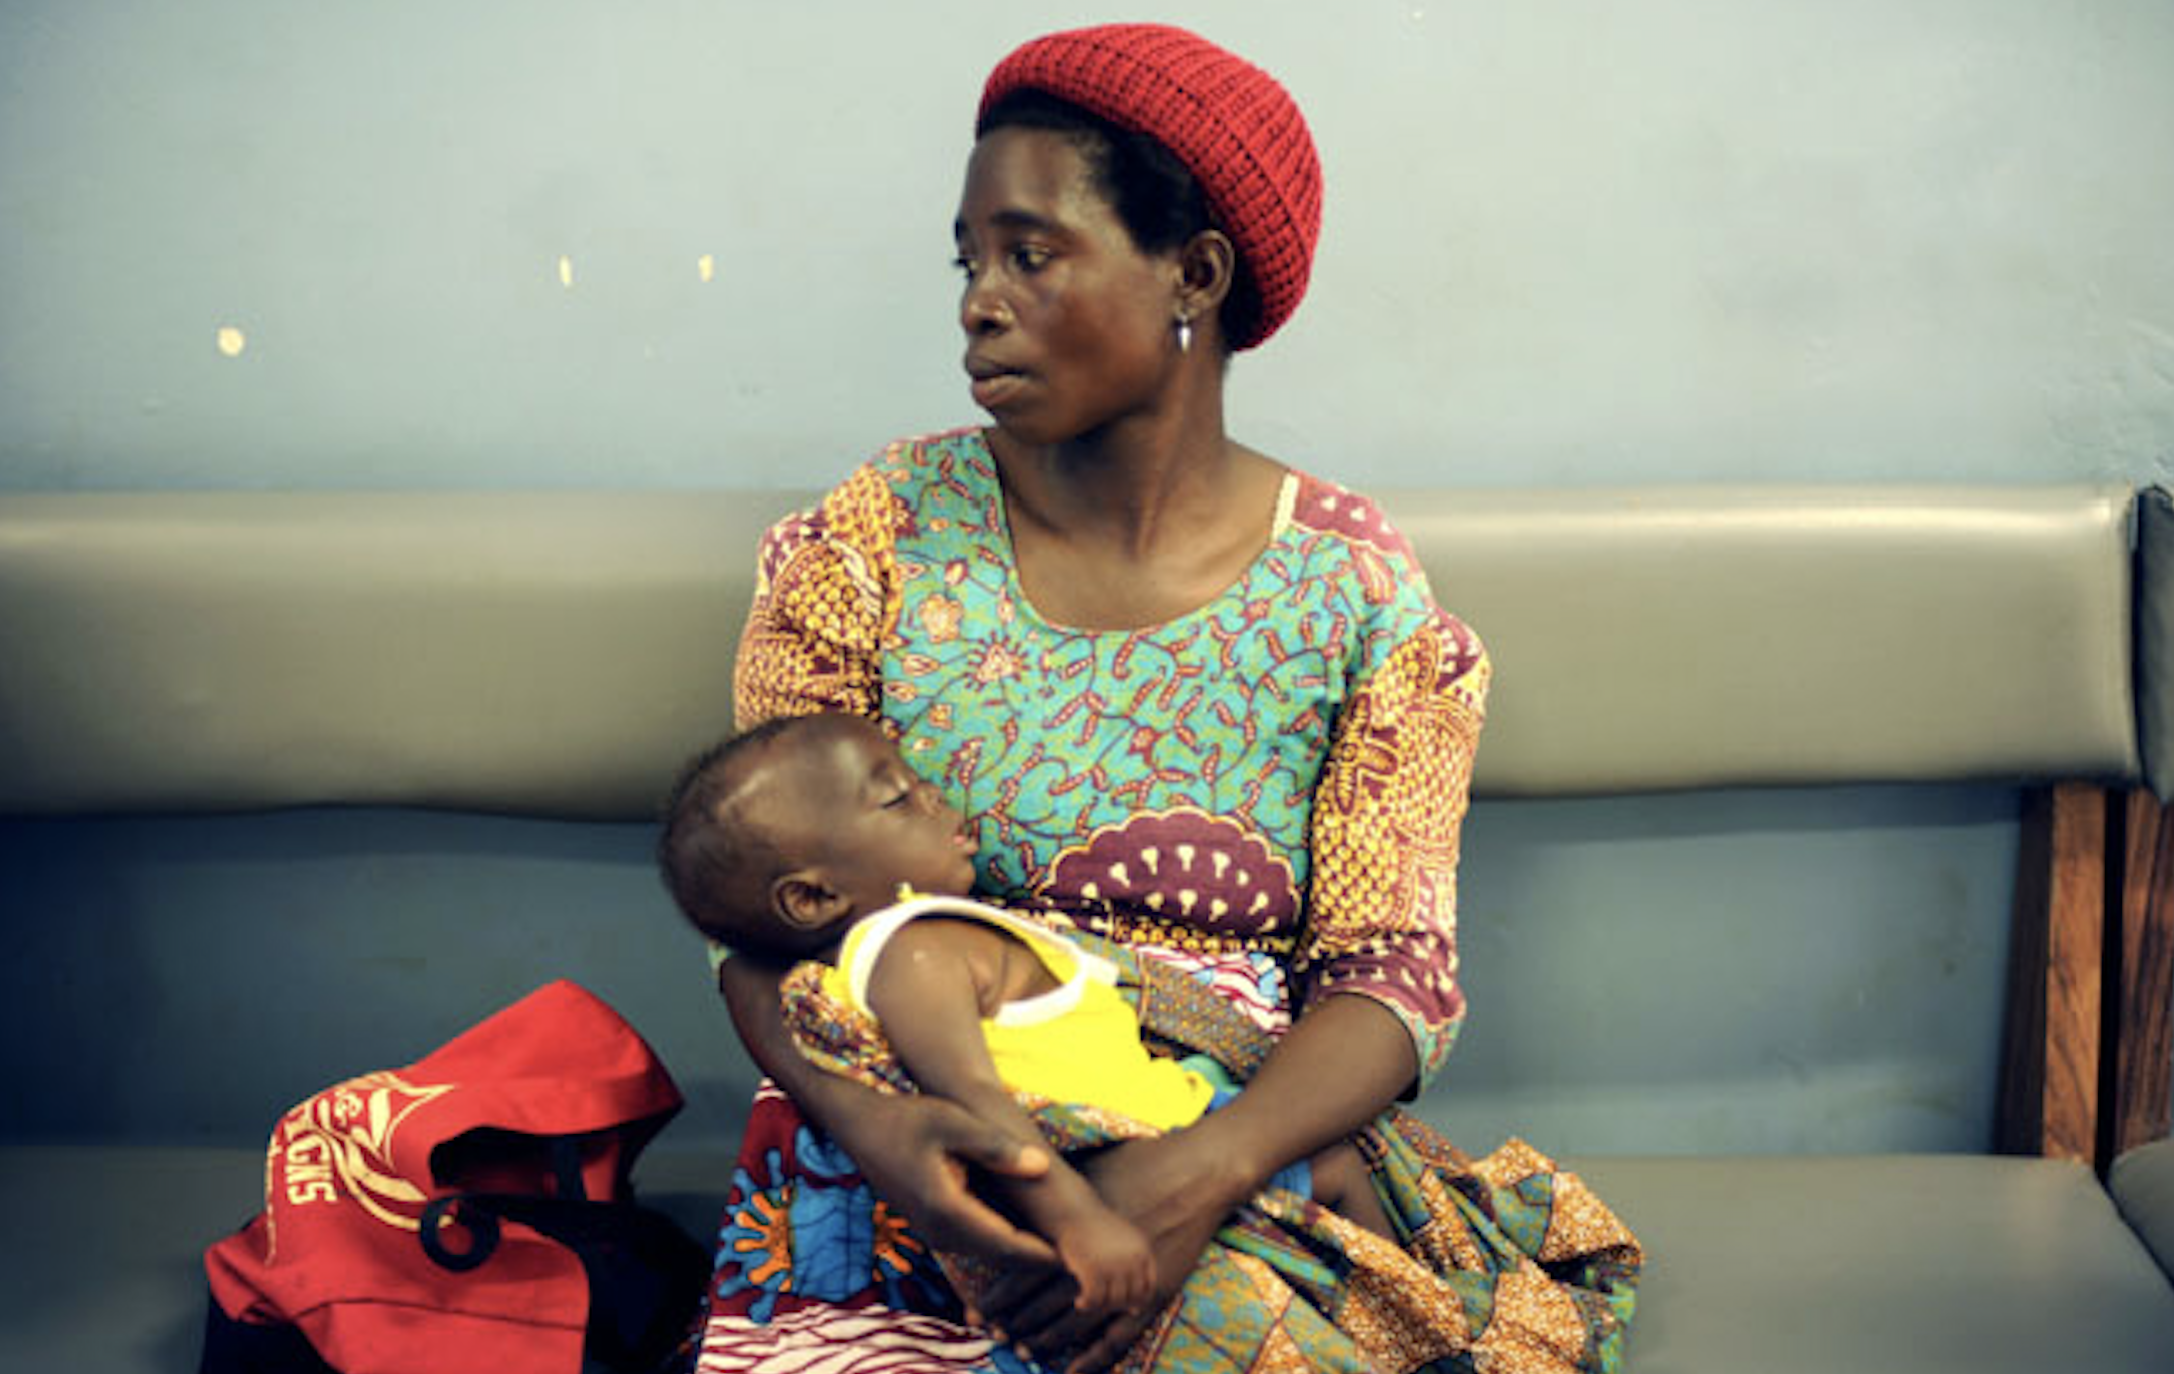 African woman holding a baby in her arms at a hospital